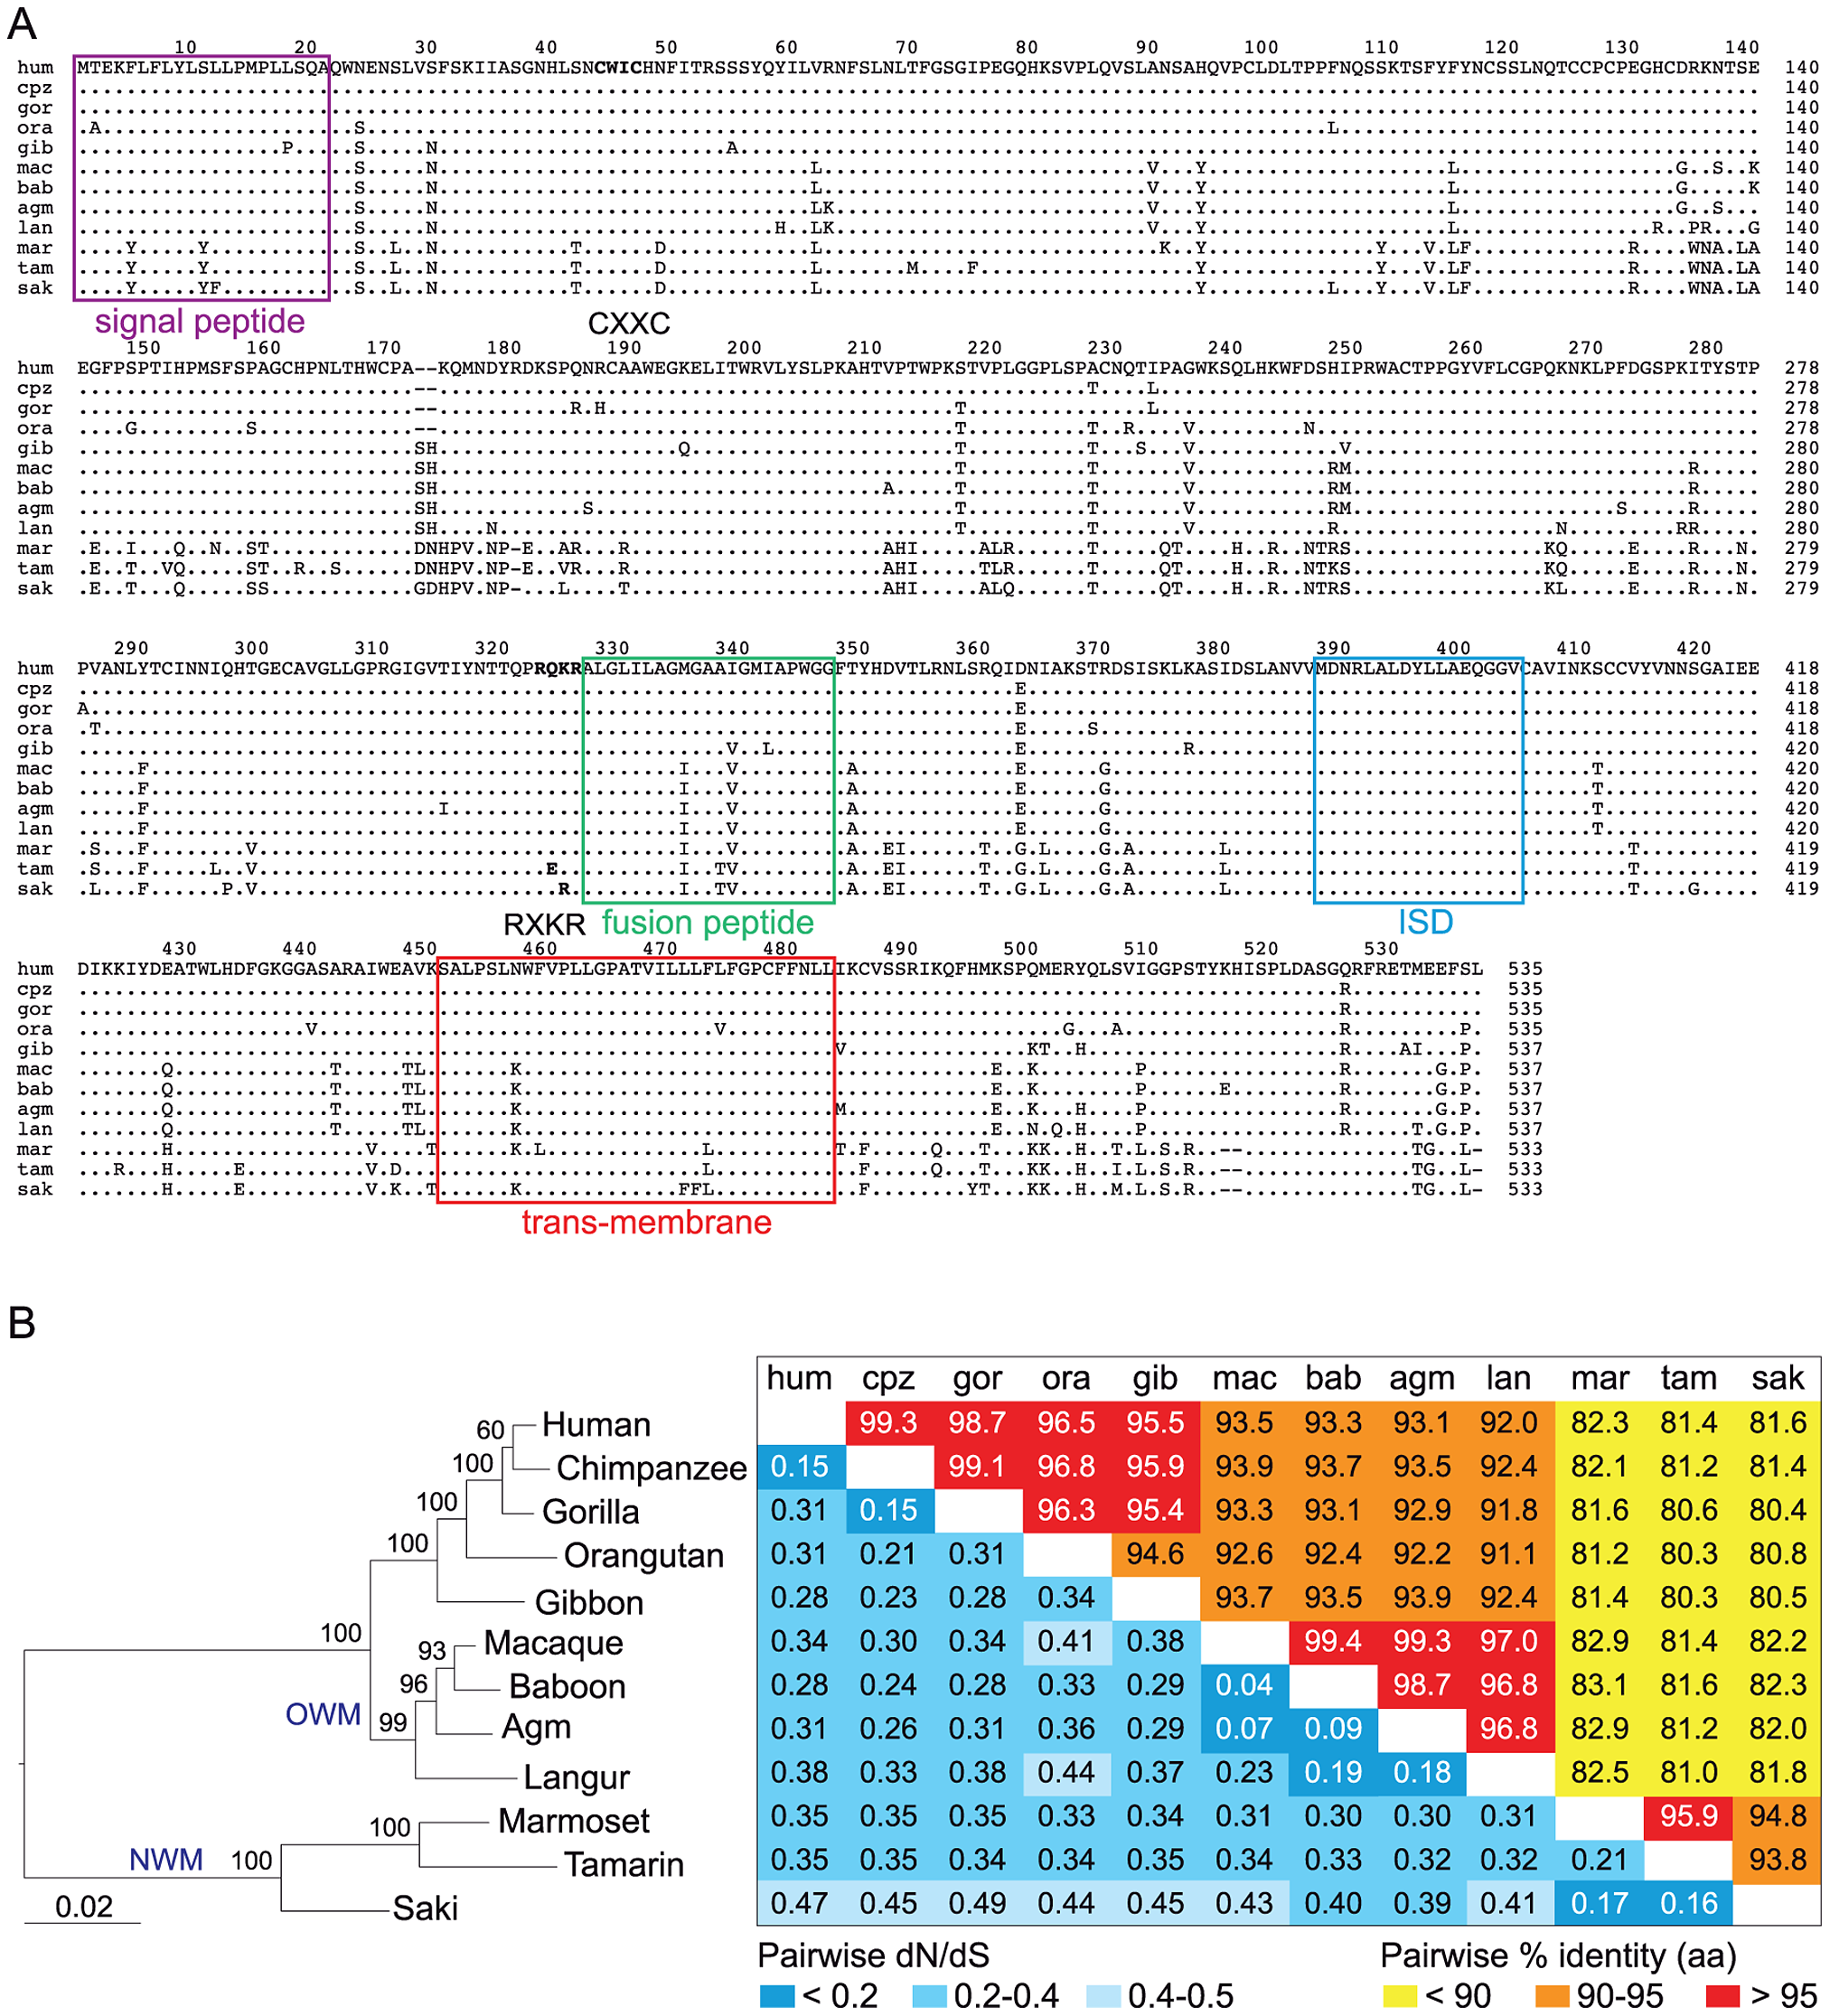 Sequence conservation and purifying selection of the <i>envV2</i> gene in primates.